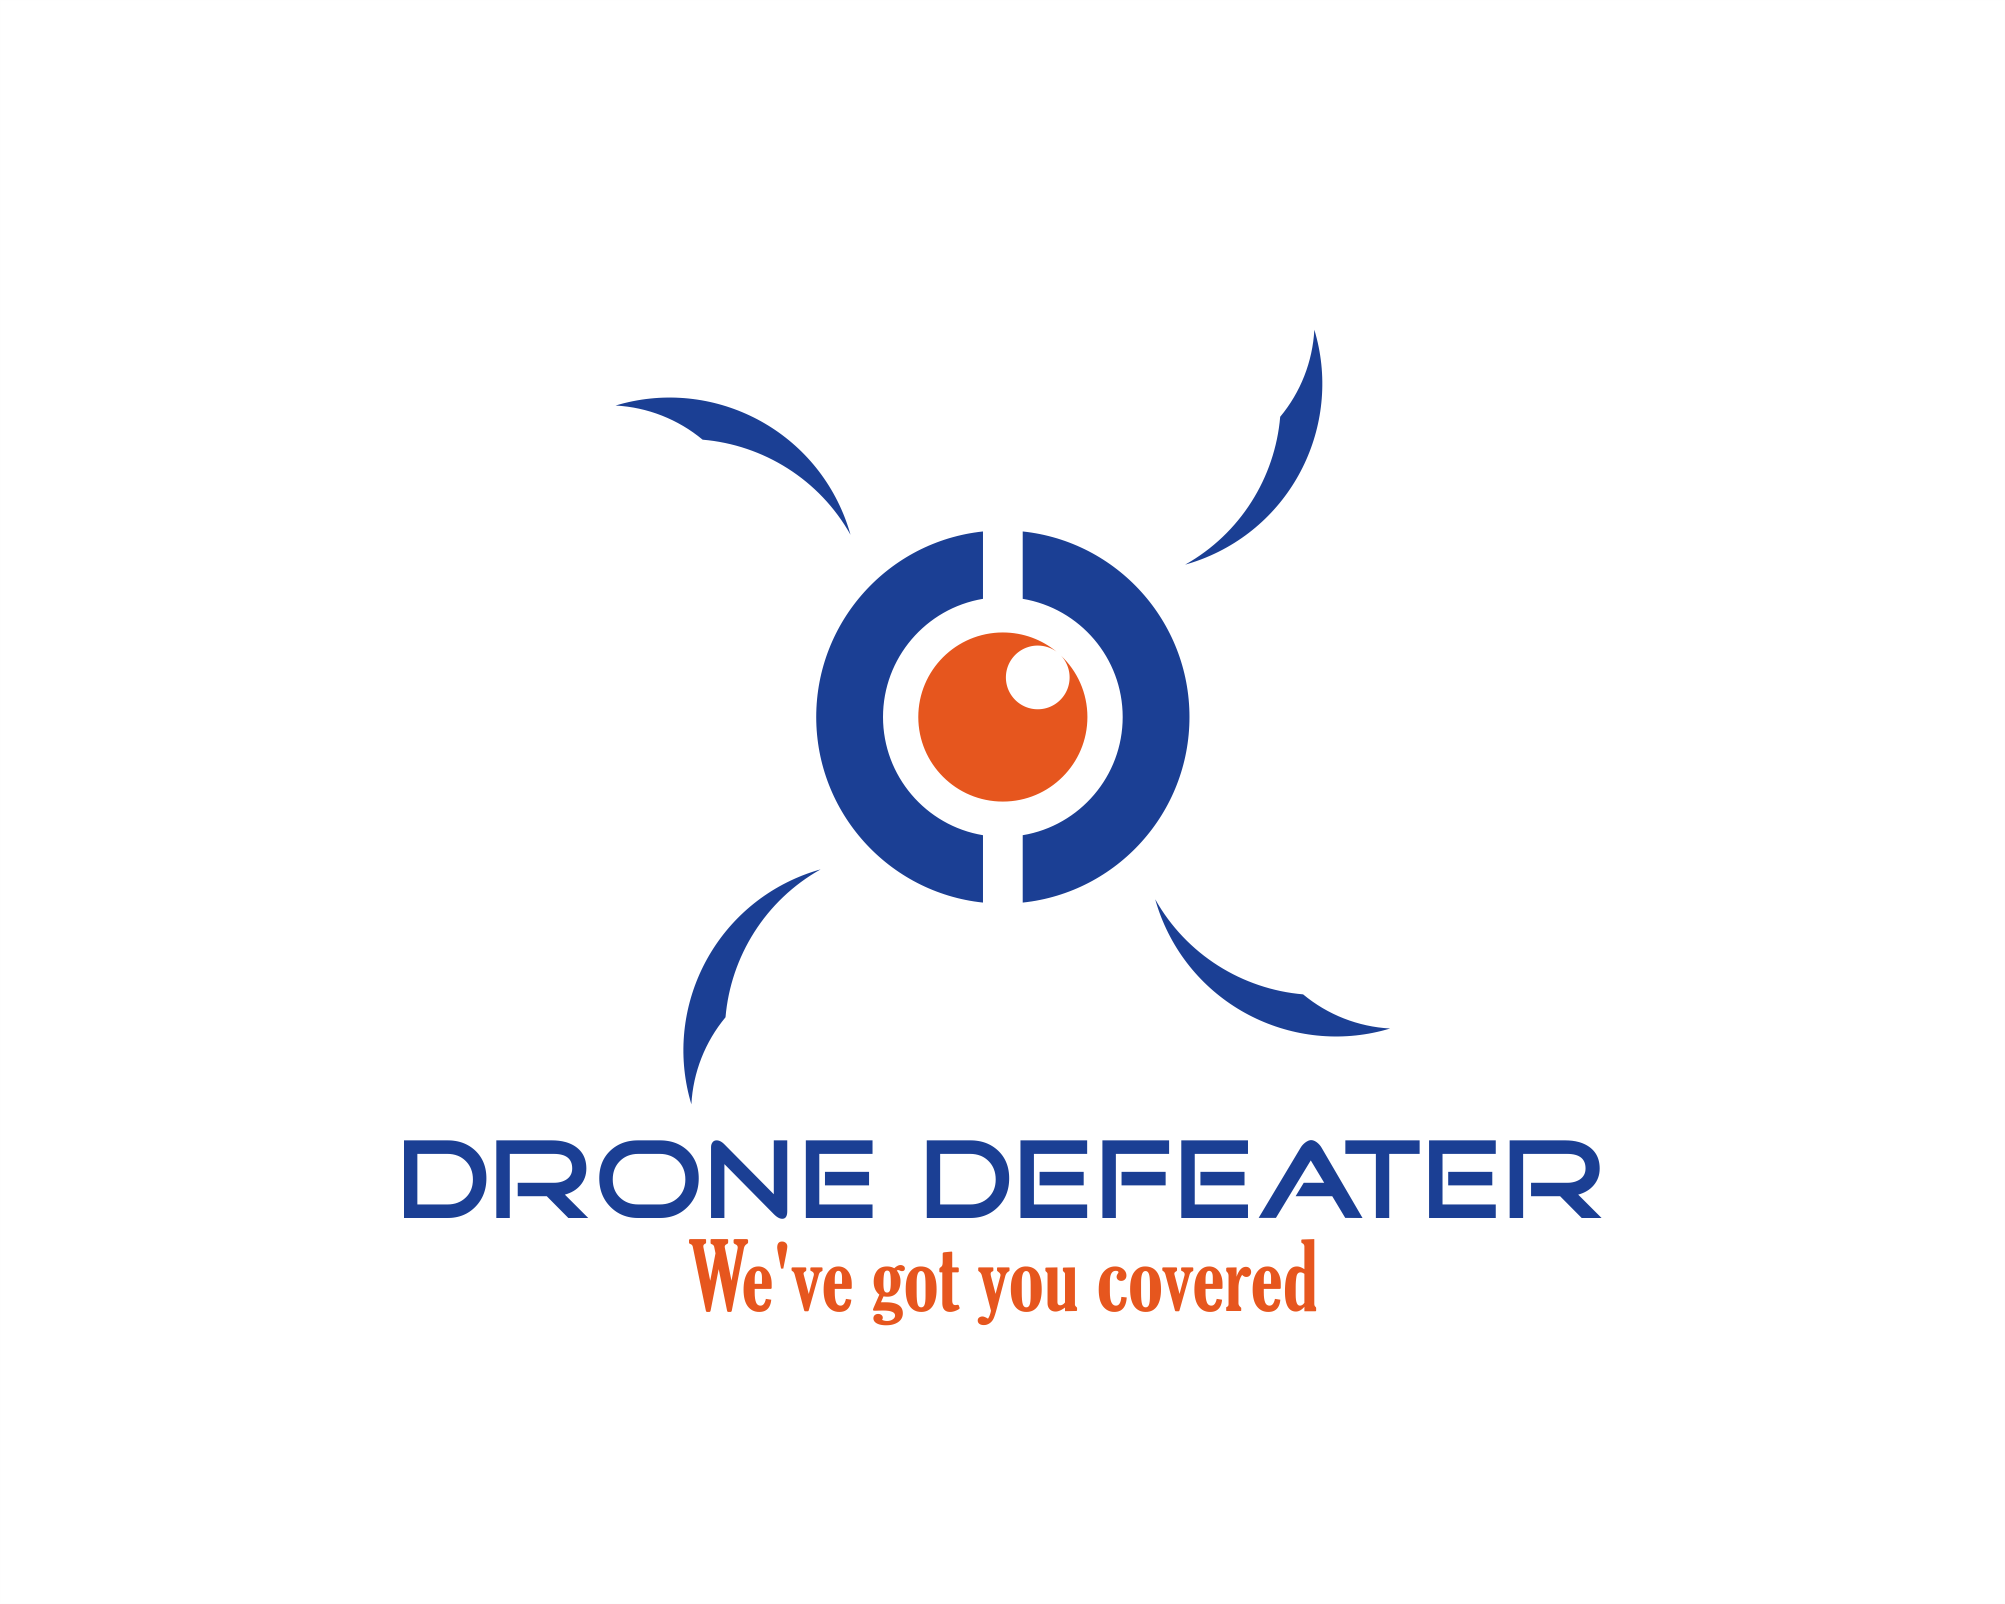 Logo Design by Net Bih - Entry No. 10 in the Logo Design Contest Artistic Logo Design for Drone Defeater.